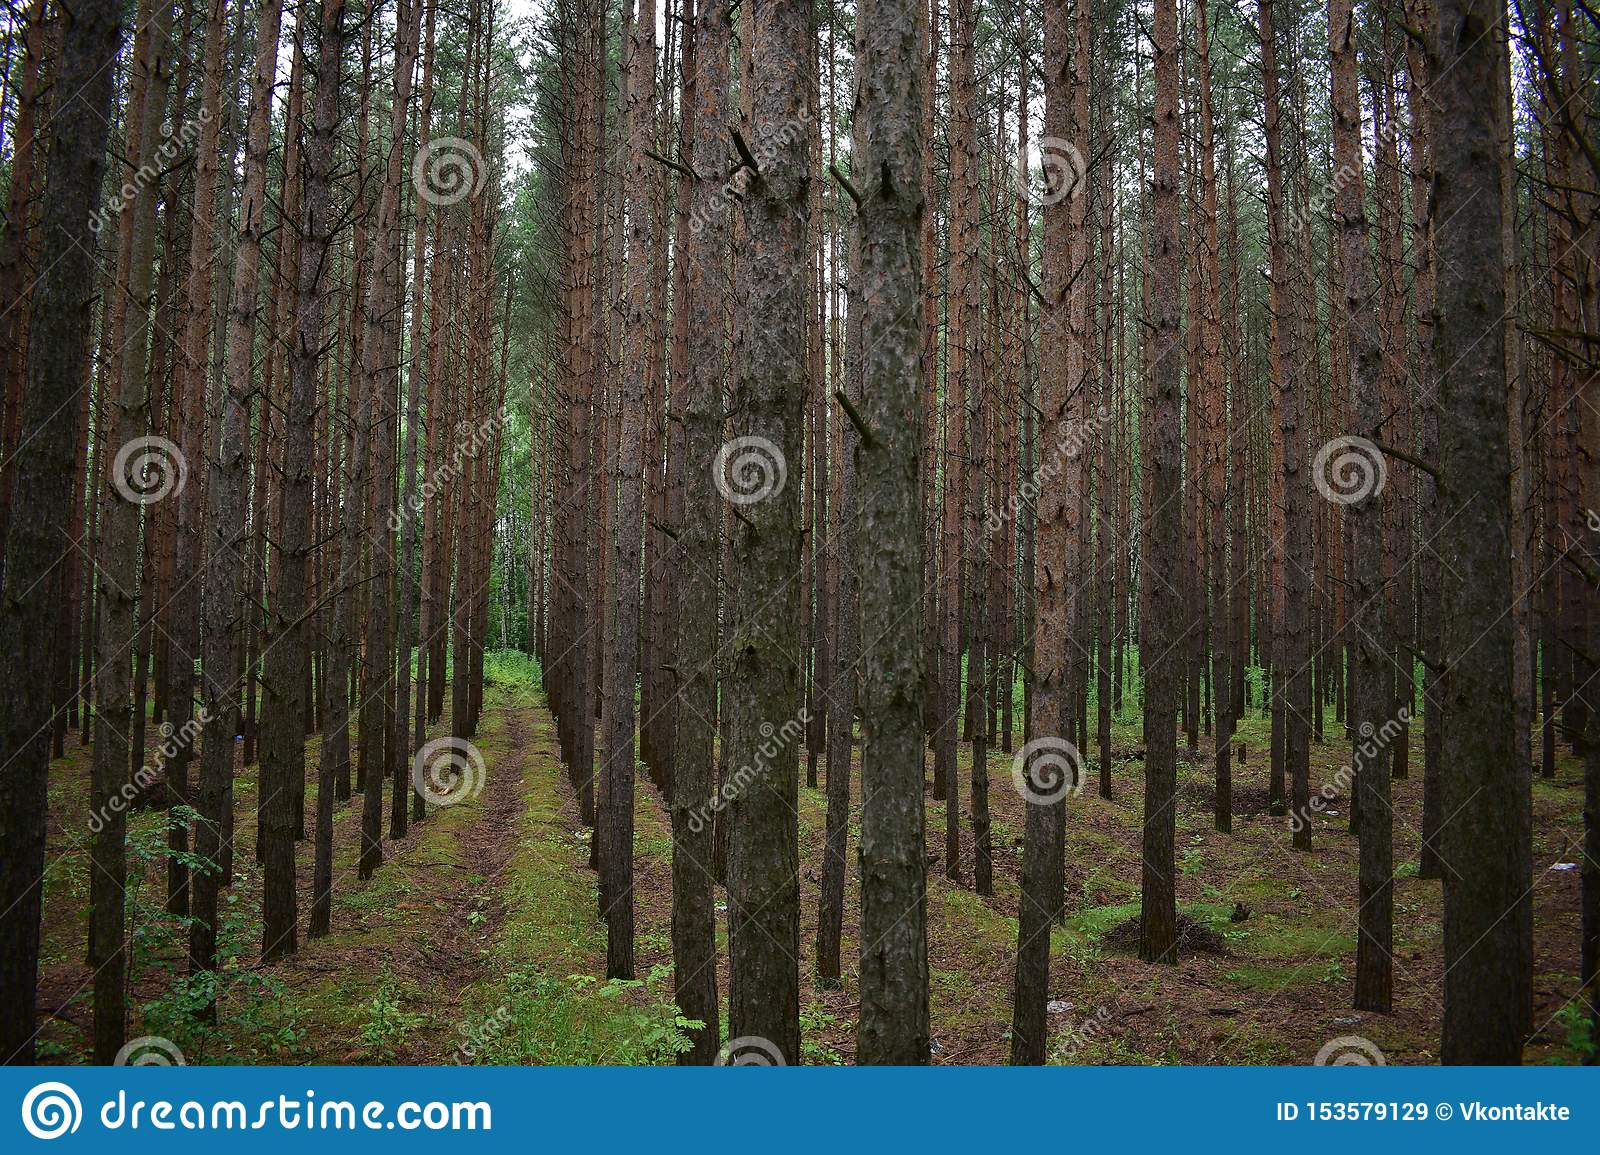 There is a great variety of crown forms in forest trees, giving aesthetic value and utility as forest products. Pine Forest Is The Lightest Of All Types Of Forests Stock Image Image Of Scientific Lightest 153579129